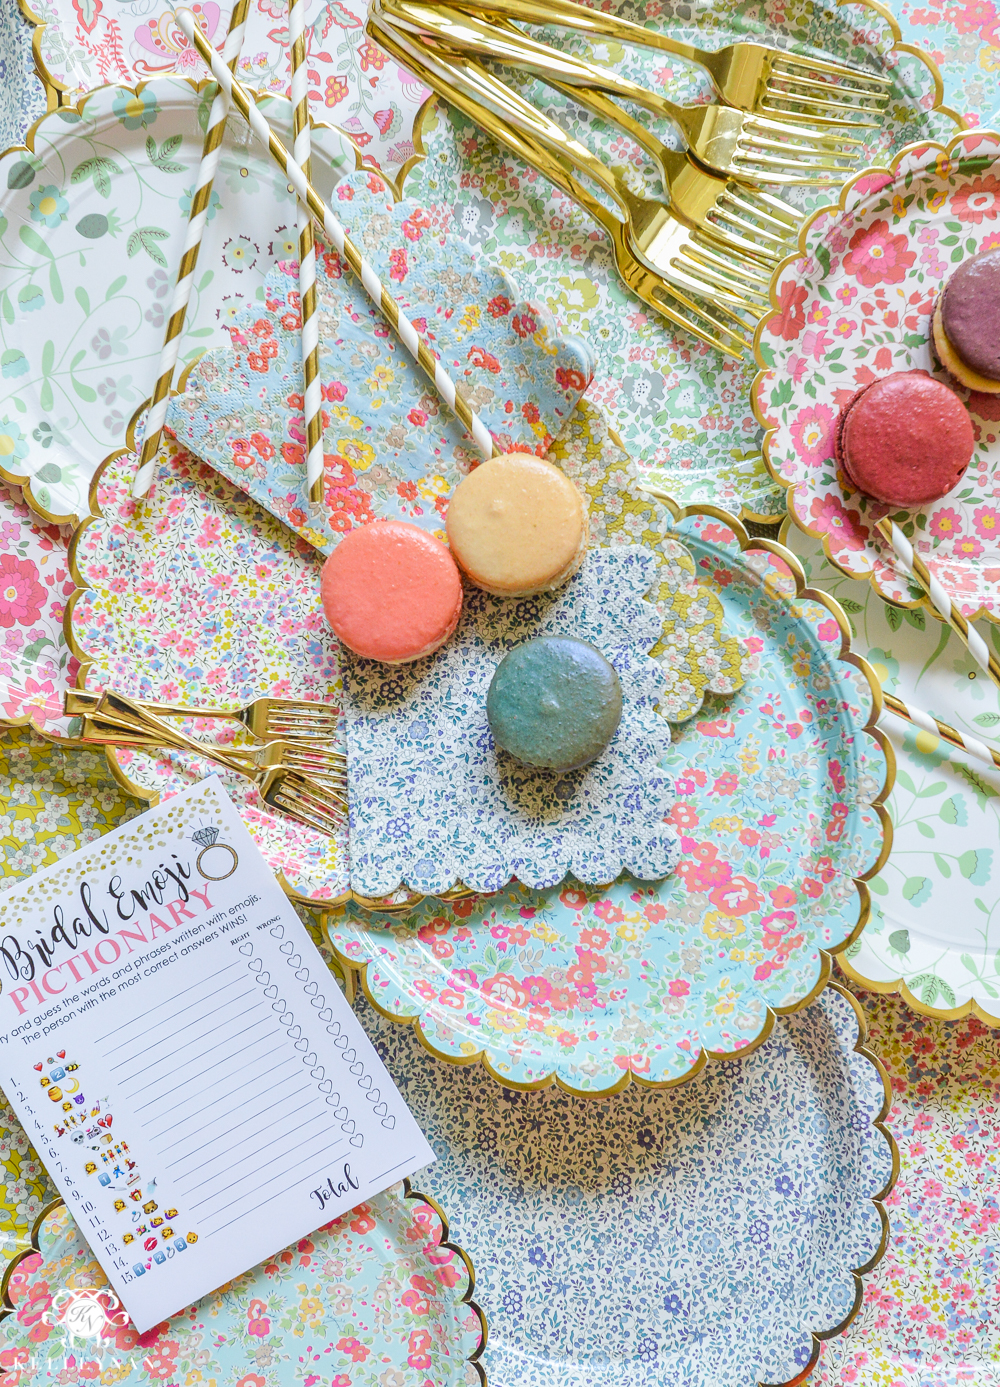 Bridal Shower Floral Plates Macarons and Gold Flatware- bridal shower ideas for a garden party with games